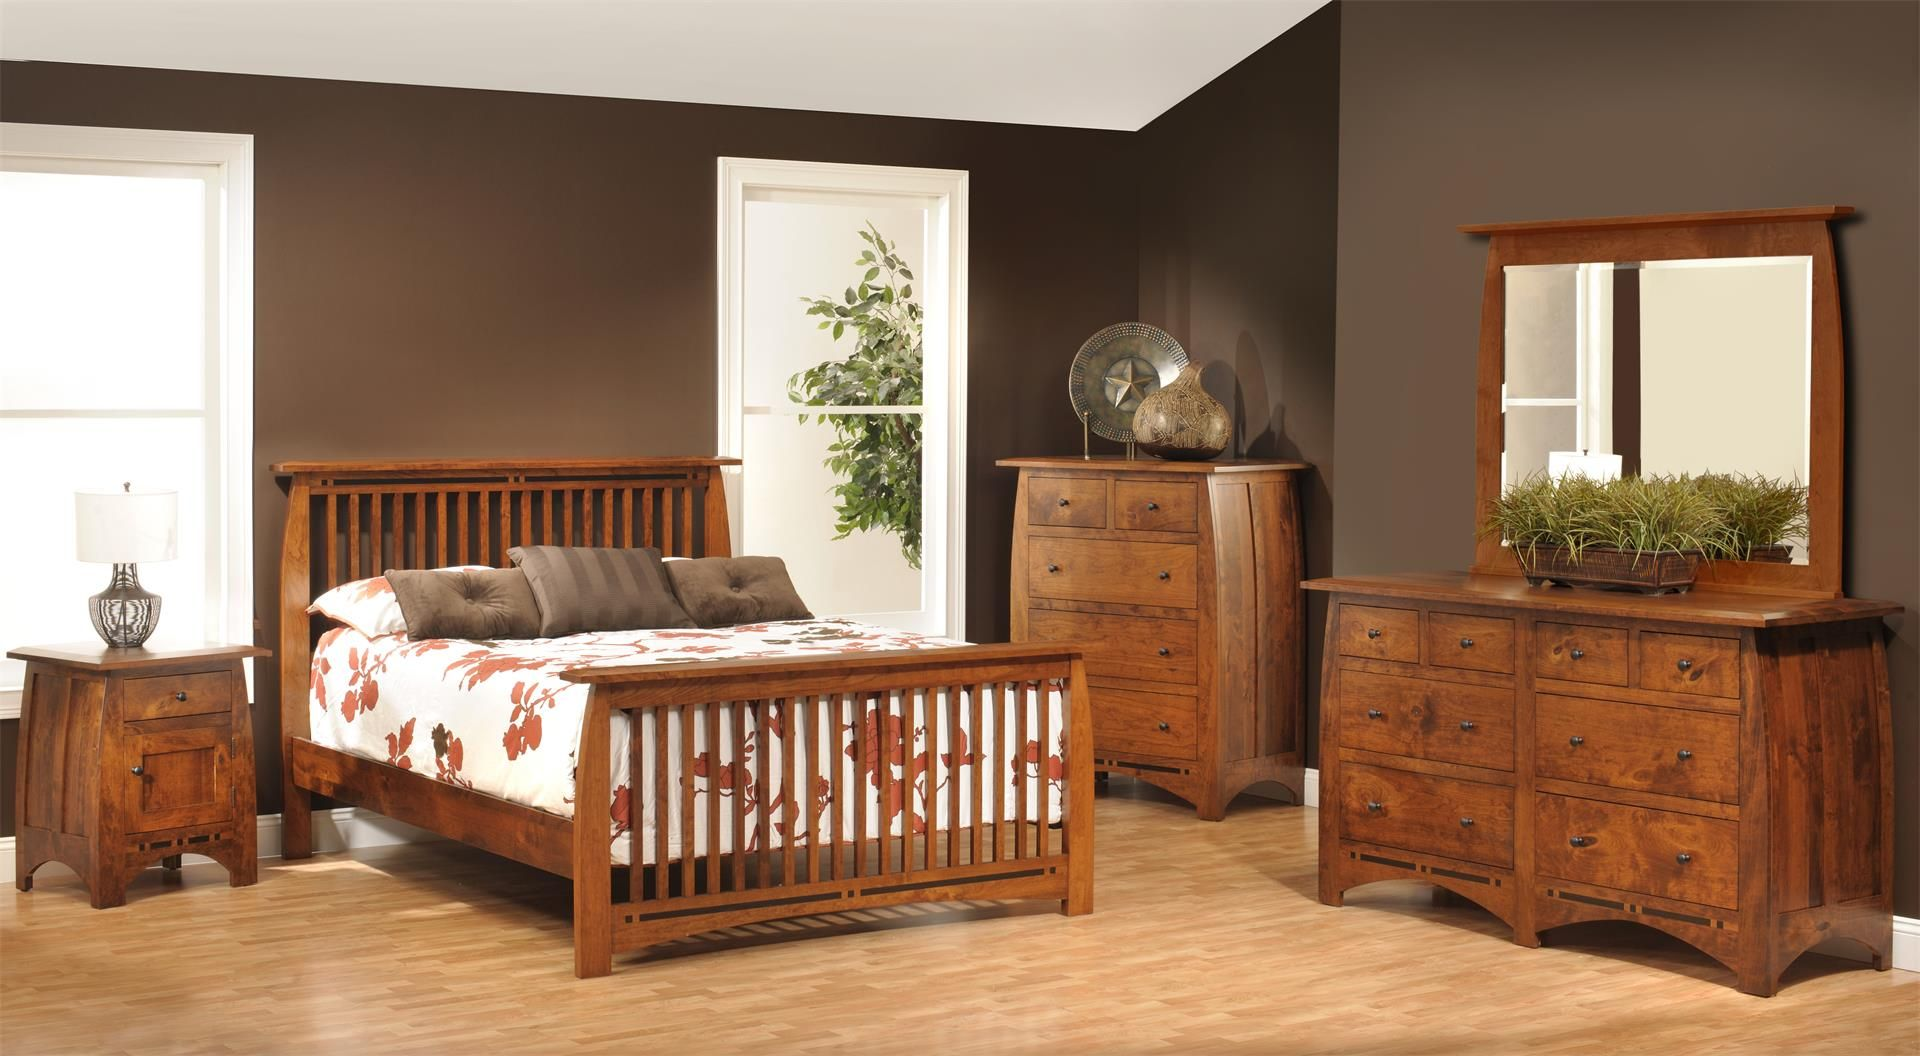 Amish vineyard mission bedroom set rustic charm and bedrooms